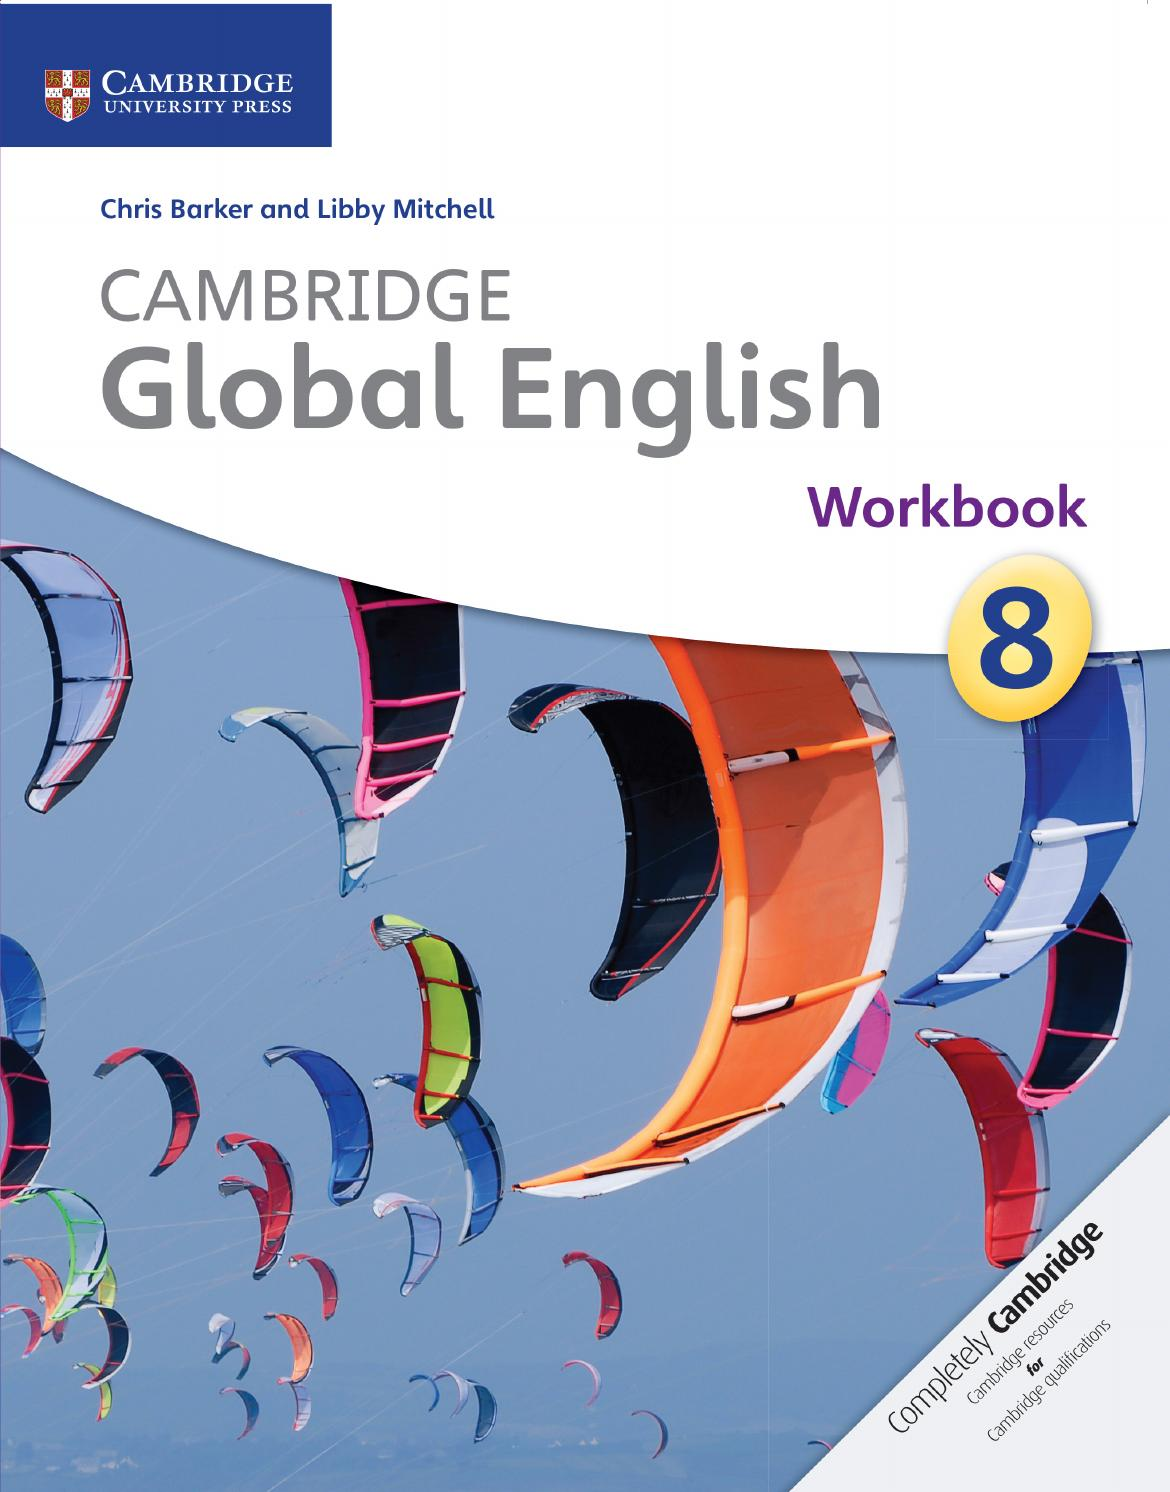 Preview Cambridge Global English Workbook 8 By Cambridge